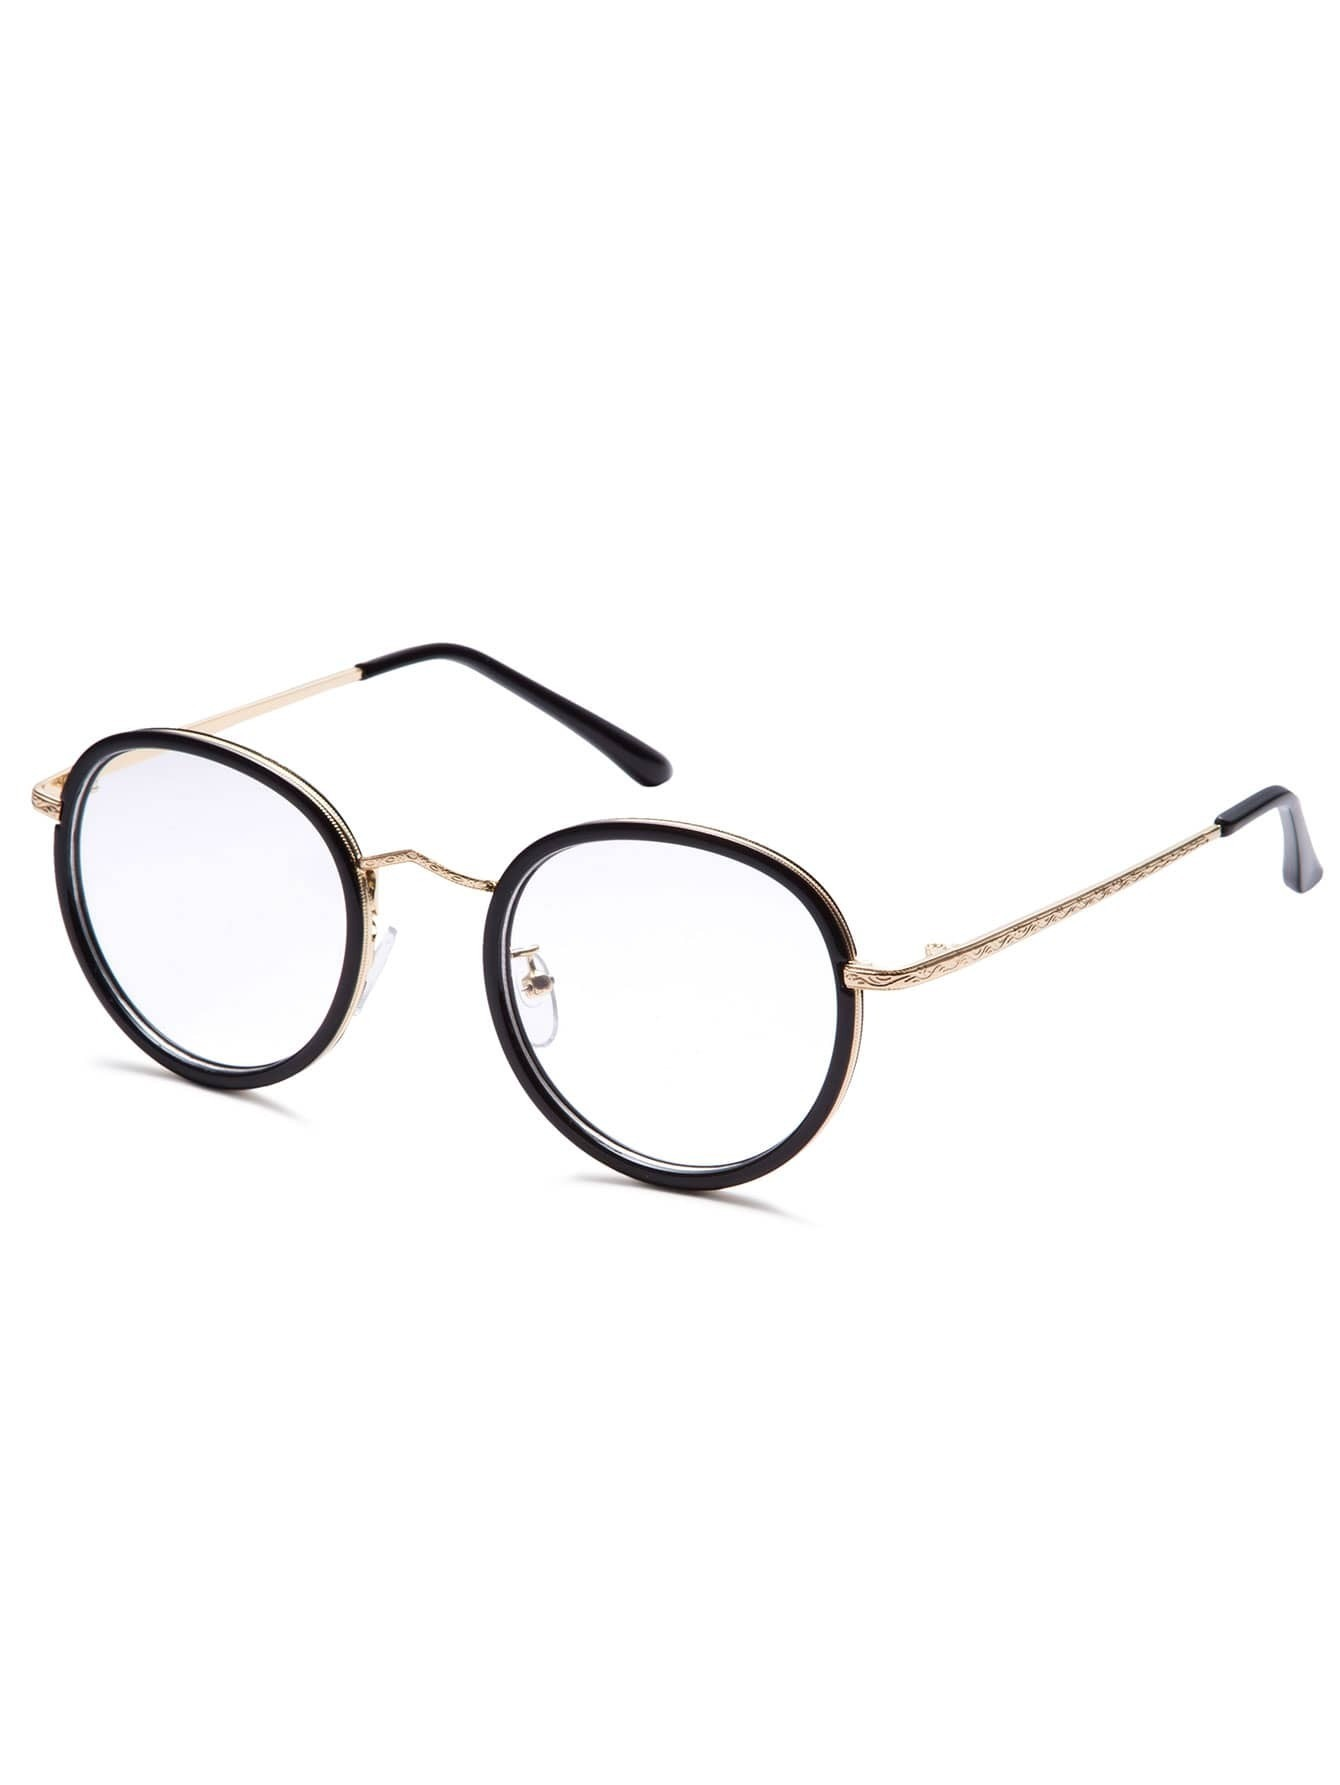 Wire Frame Glasses Vs Plastic : Black Plastic Frame Metal Arm Round Glasses